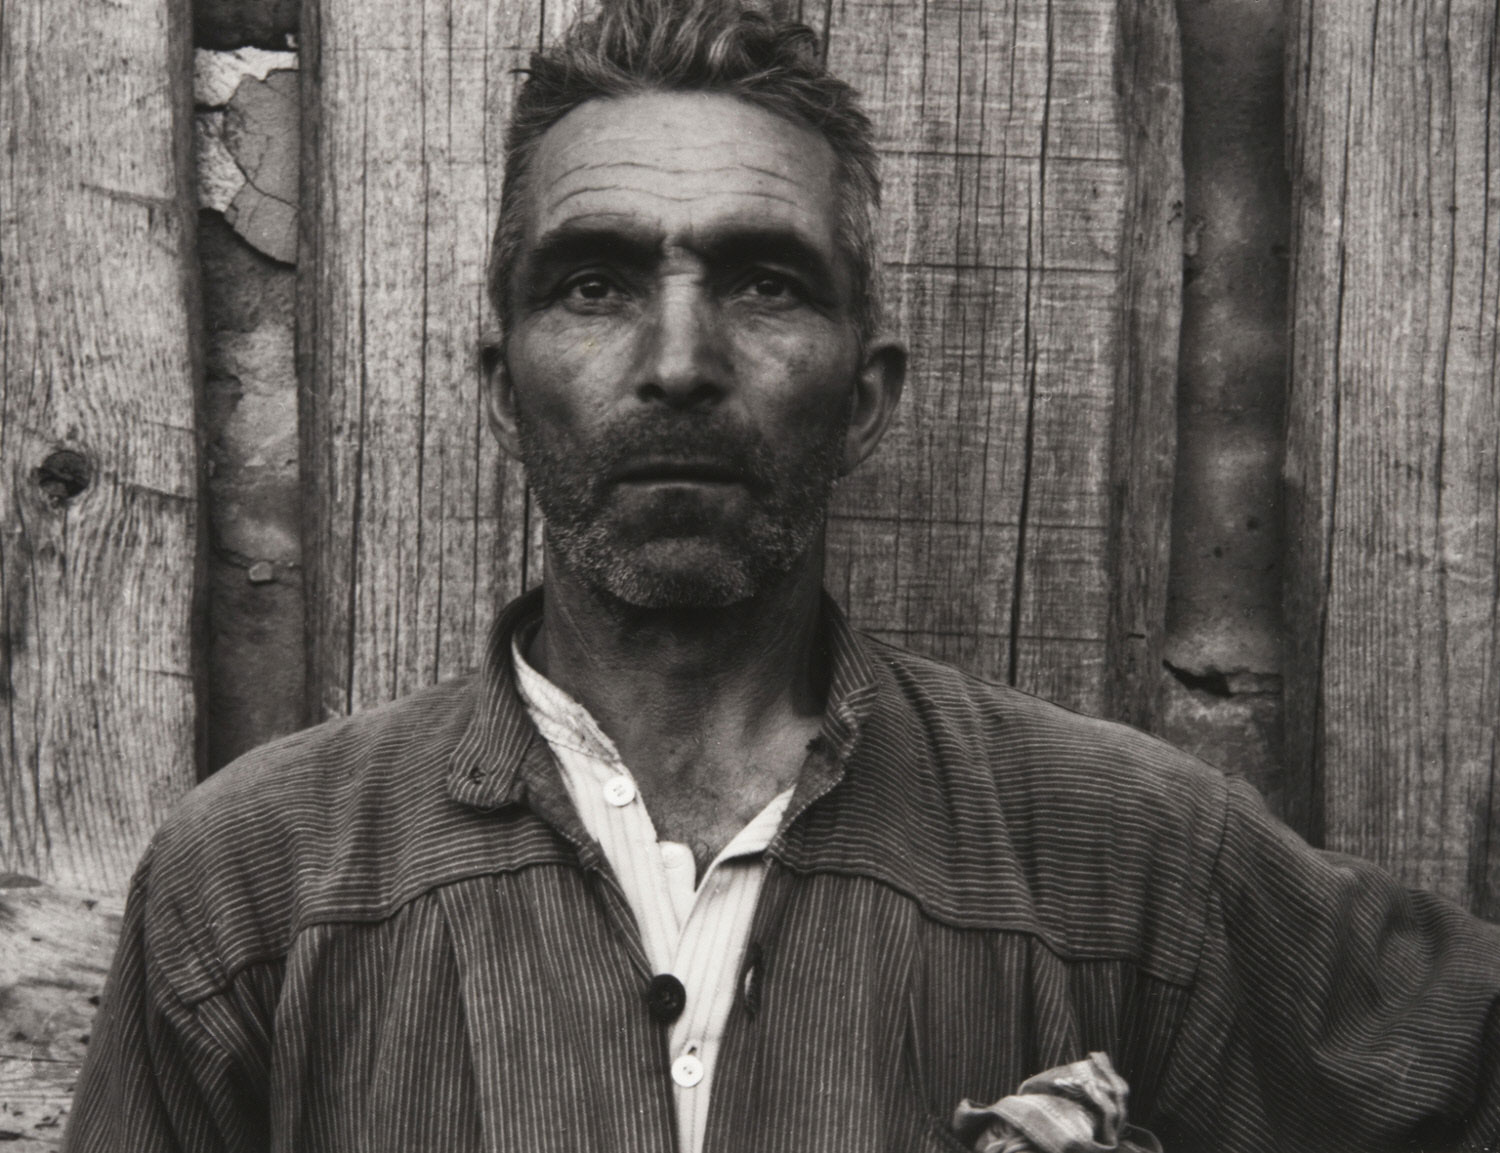 Farmer, Luzzara